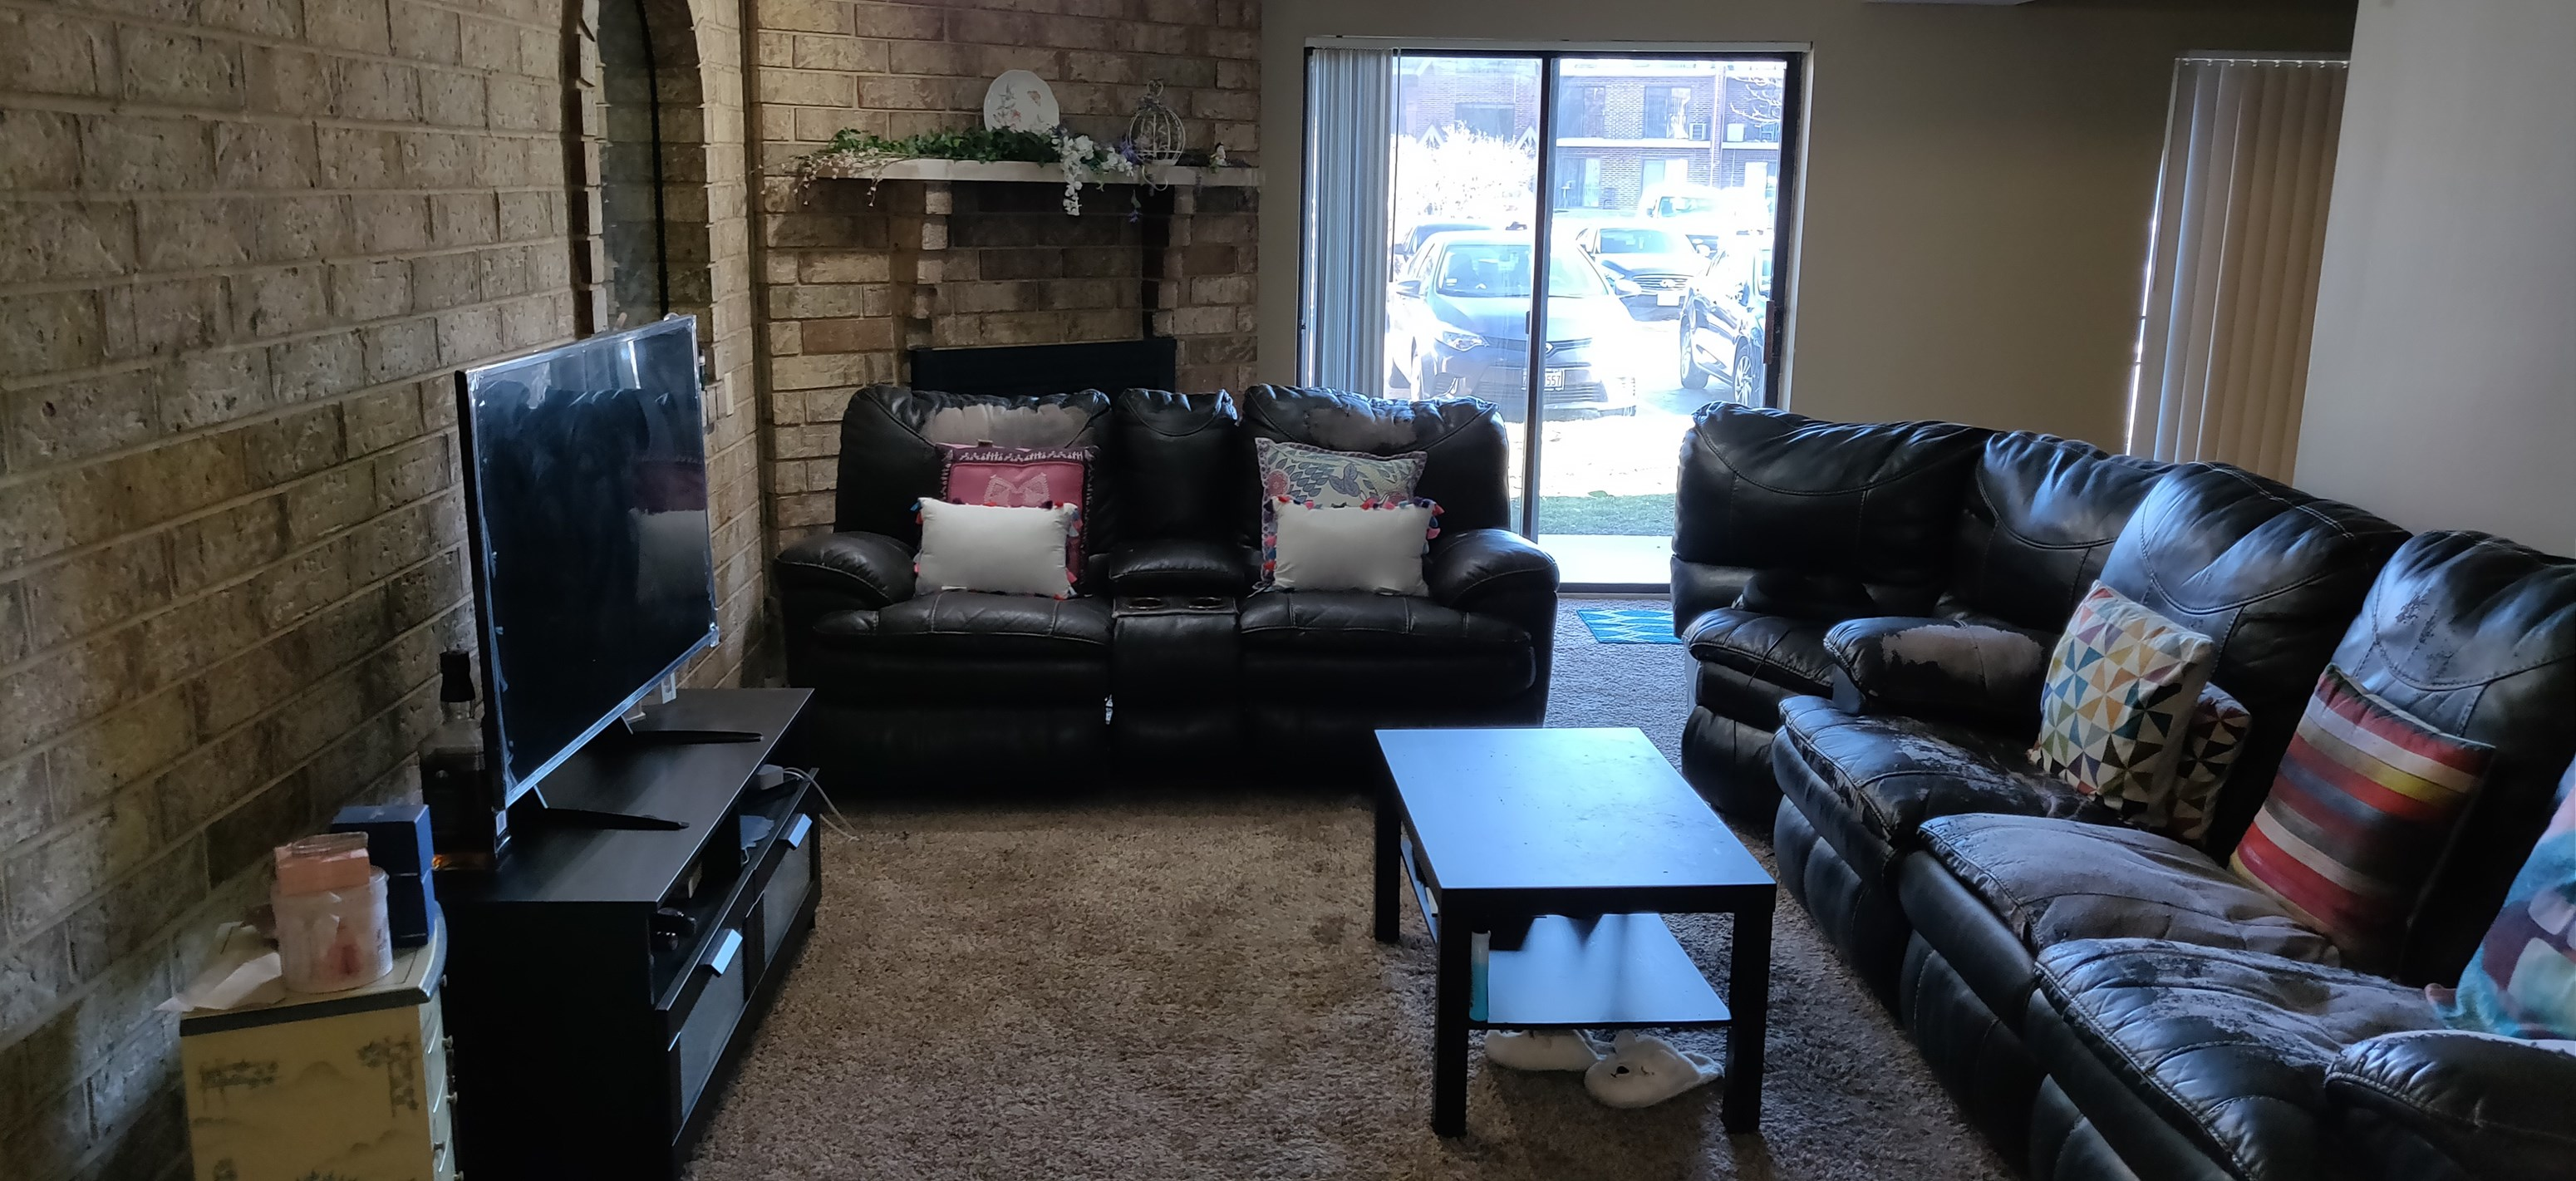 Offered Commercial Spaces To Rental Arlington Heights Il Renting